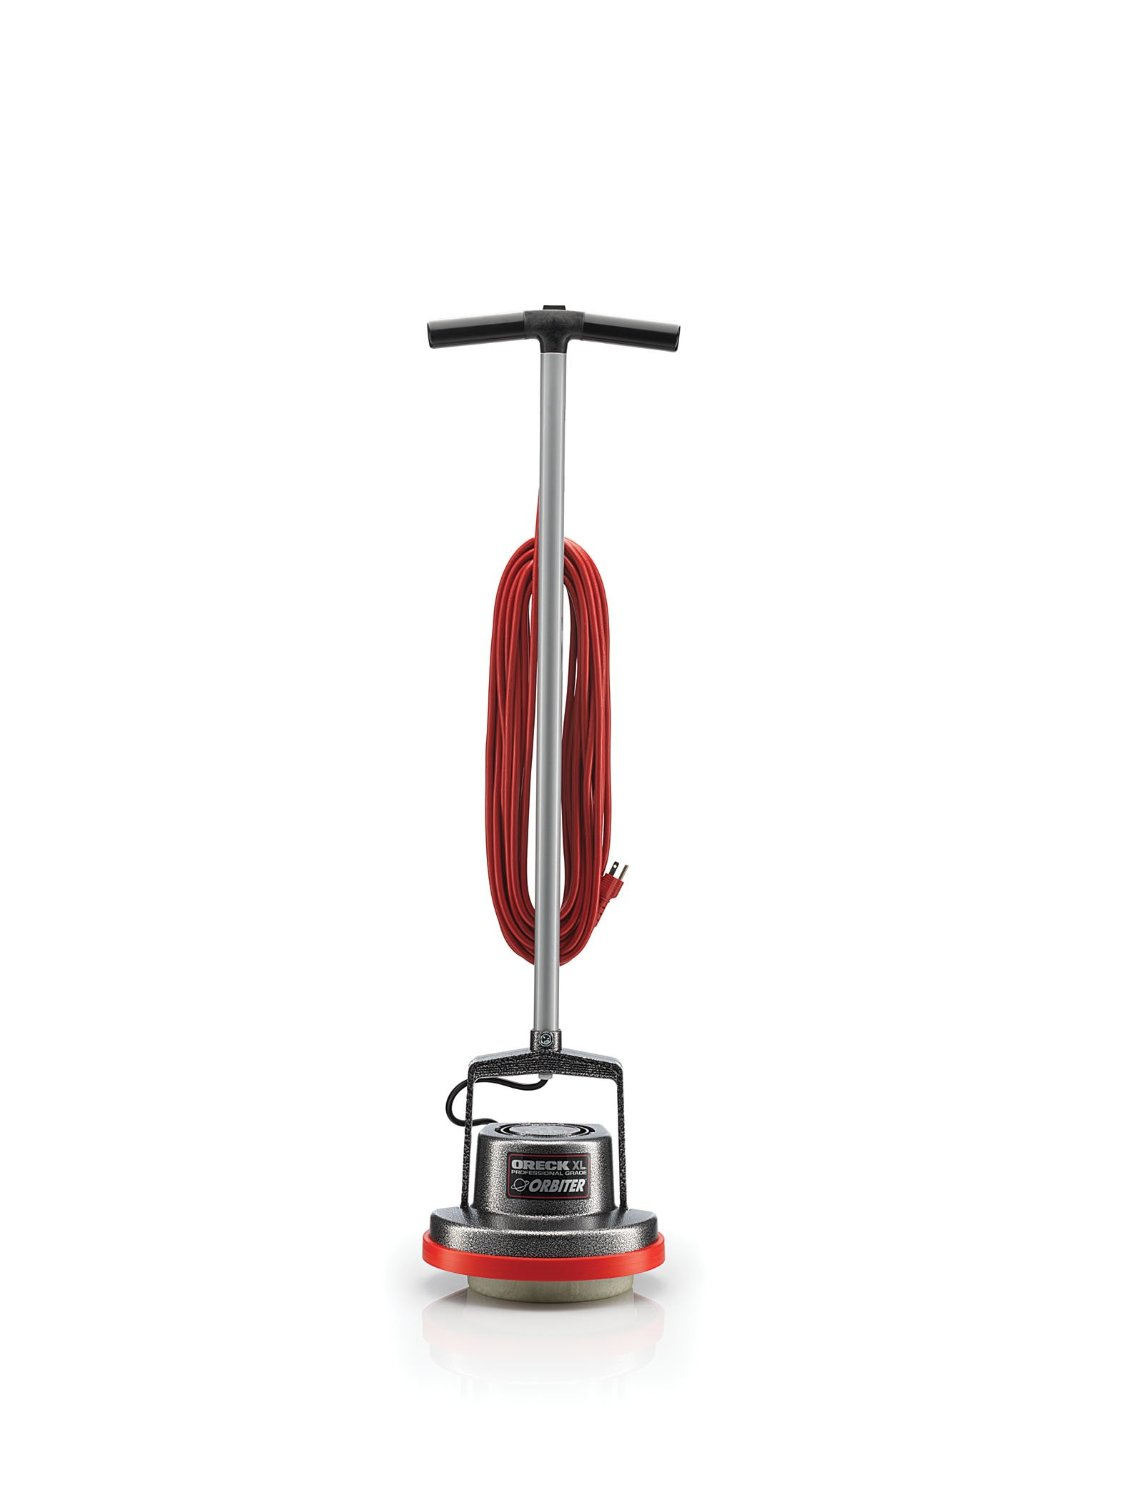 Best Vacuum For Tile Floors Comparison And Review Best Vacuum For Tile Floors